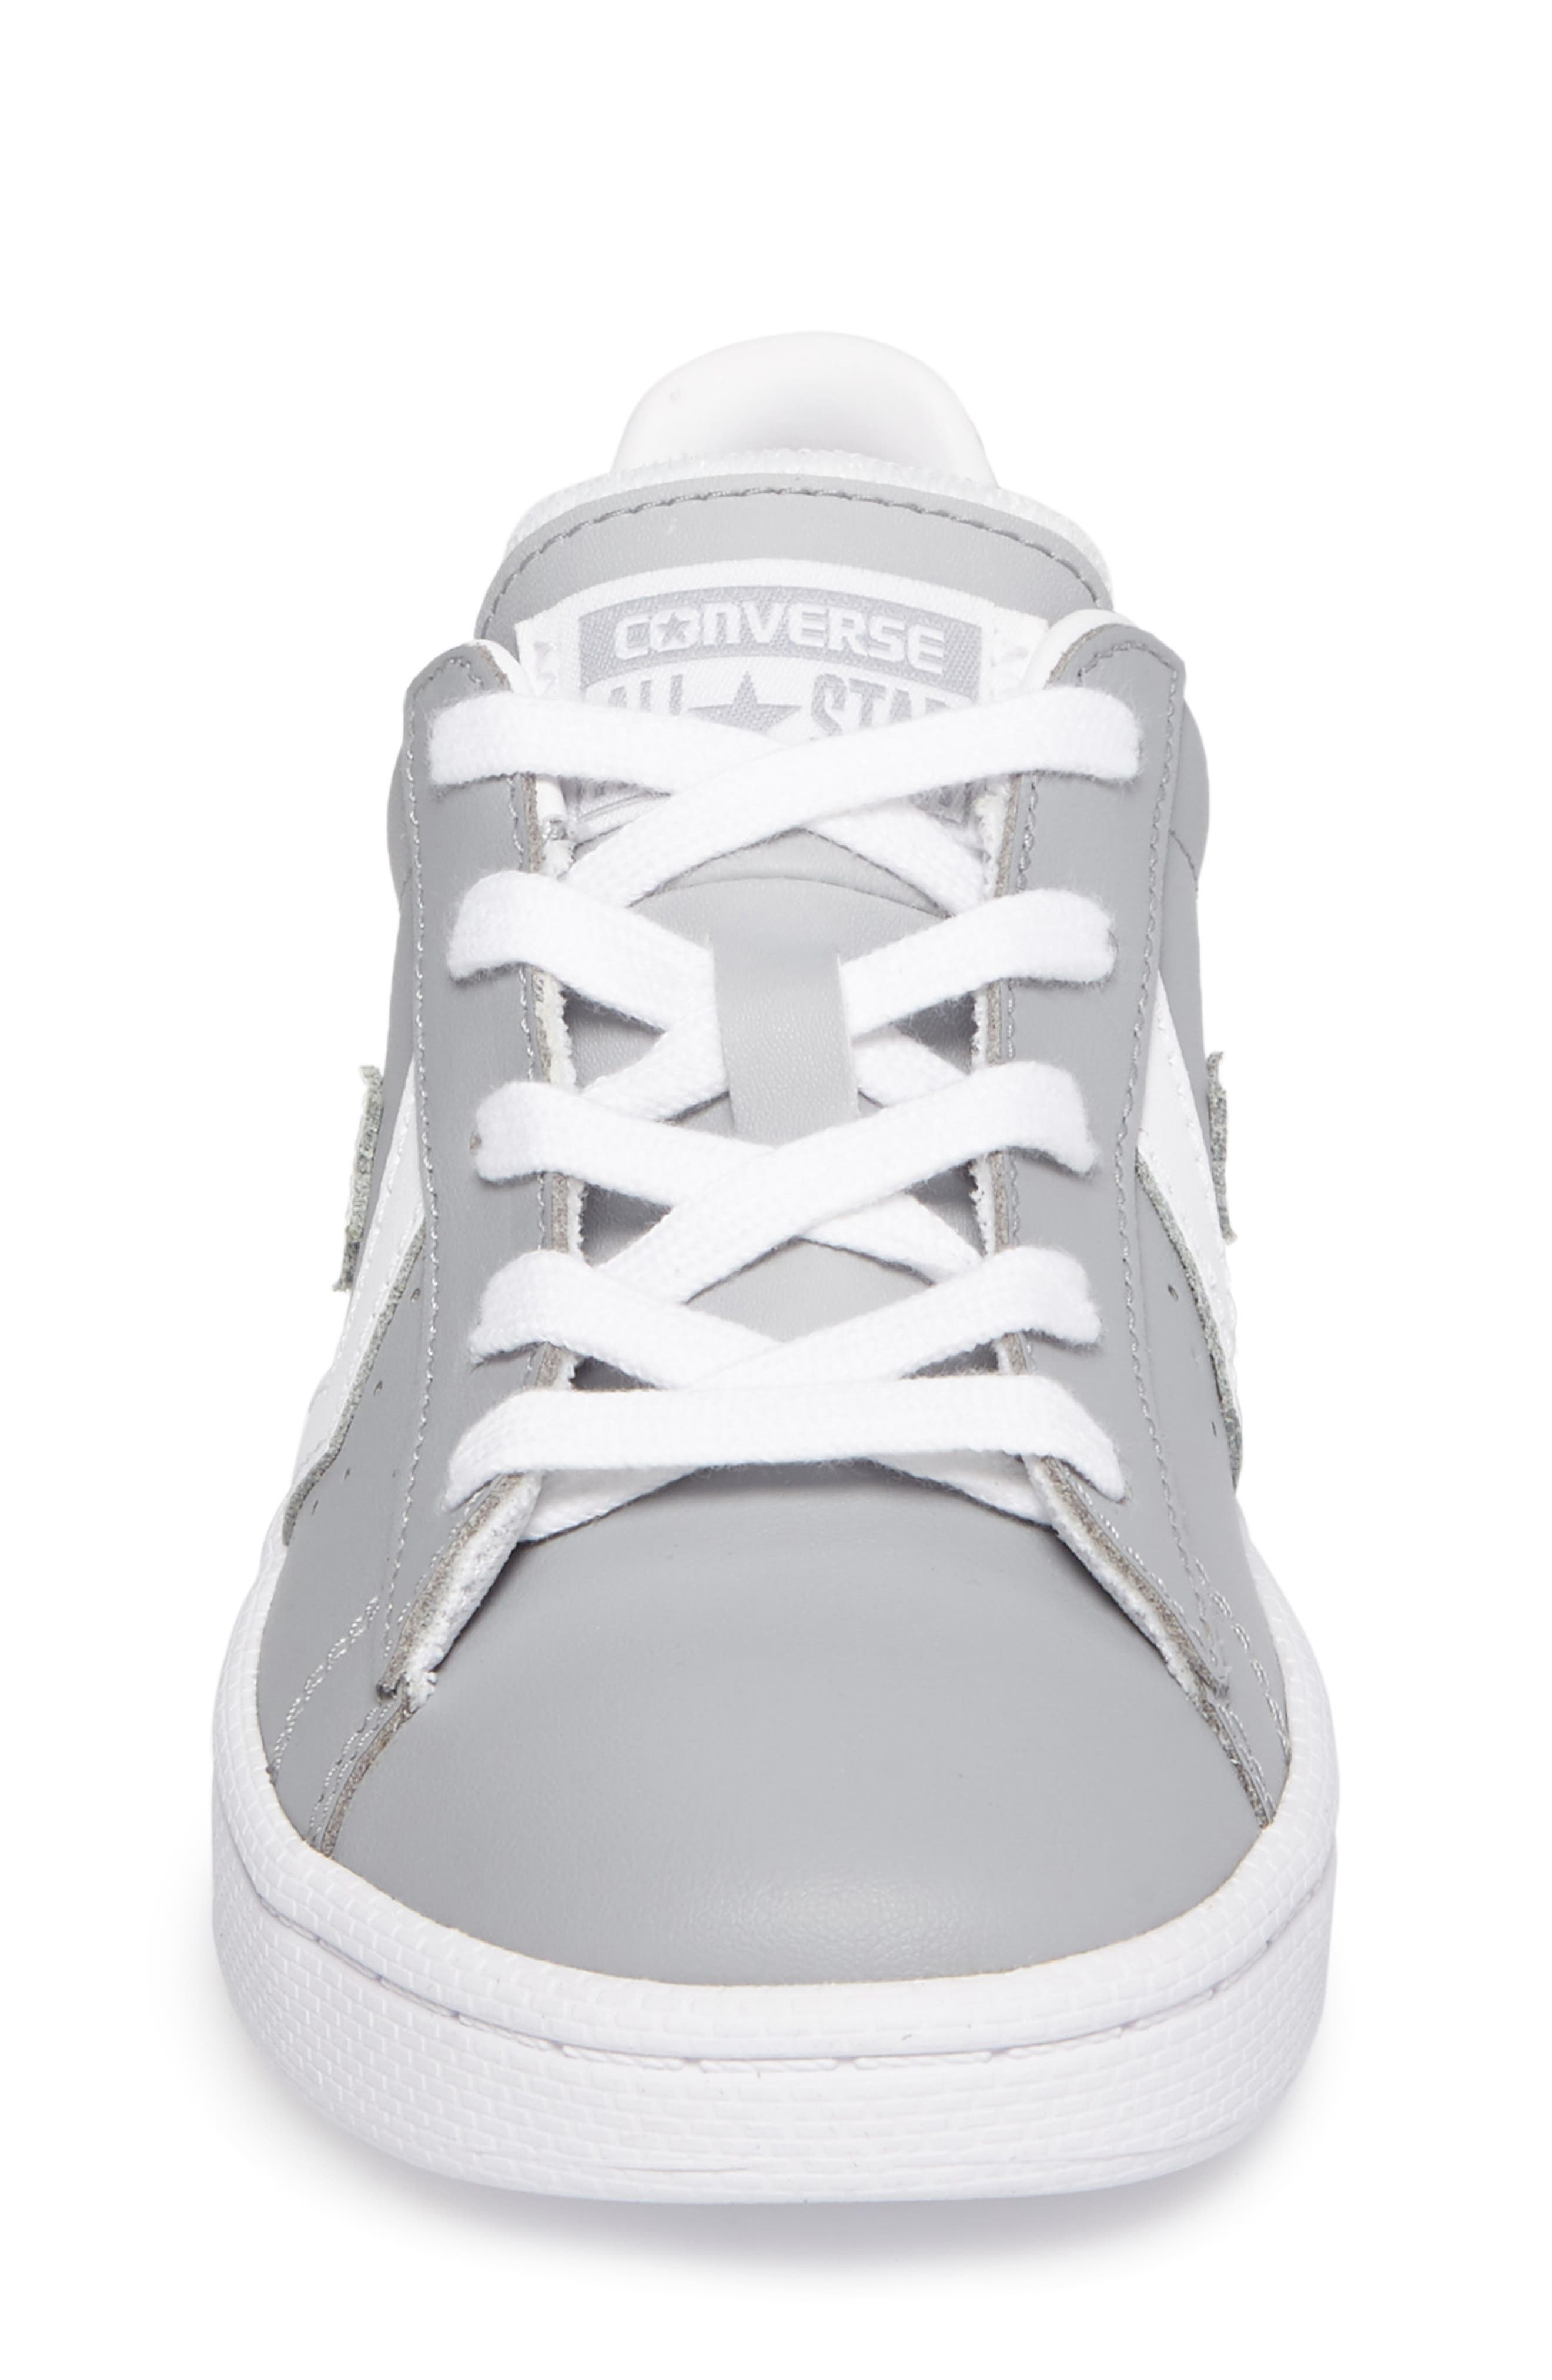 All Star<sup>®</sup> Pro Leather Low Top Sneaker,                             Alternate thumbnail 4, color,                             Wolf Grey